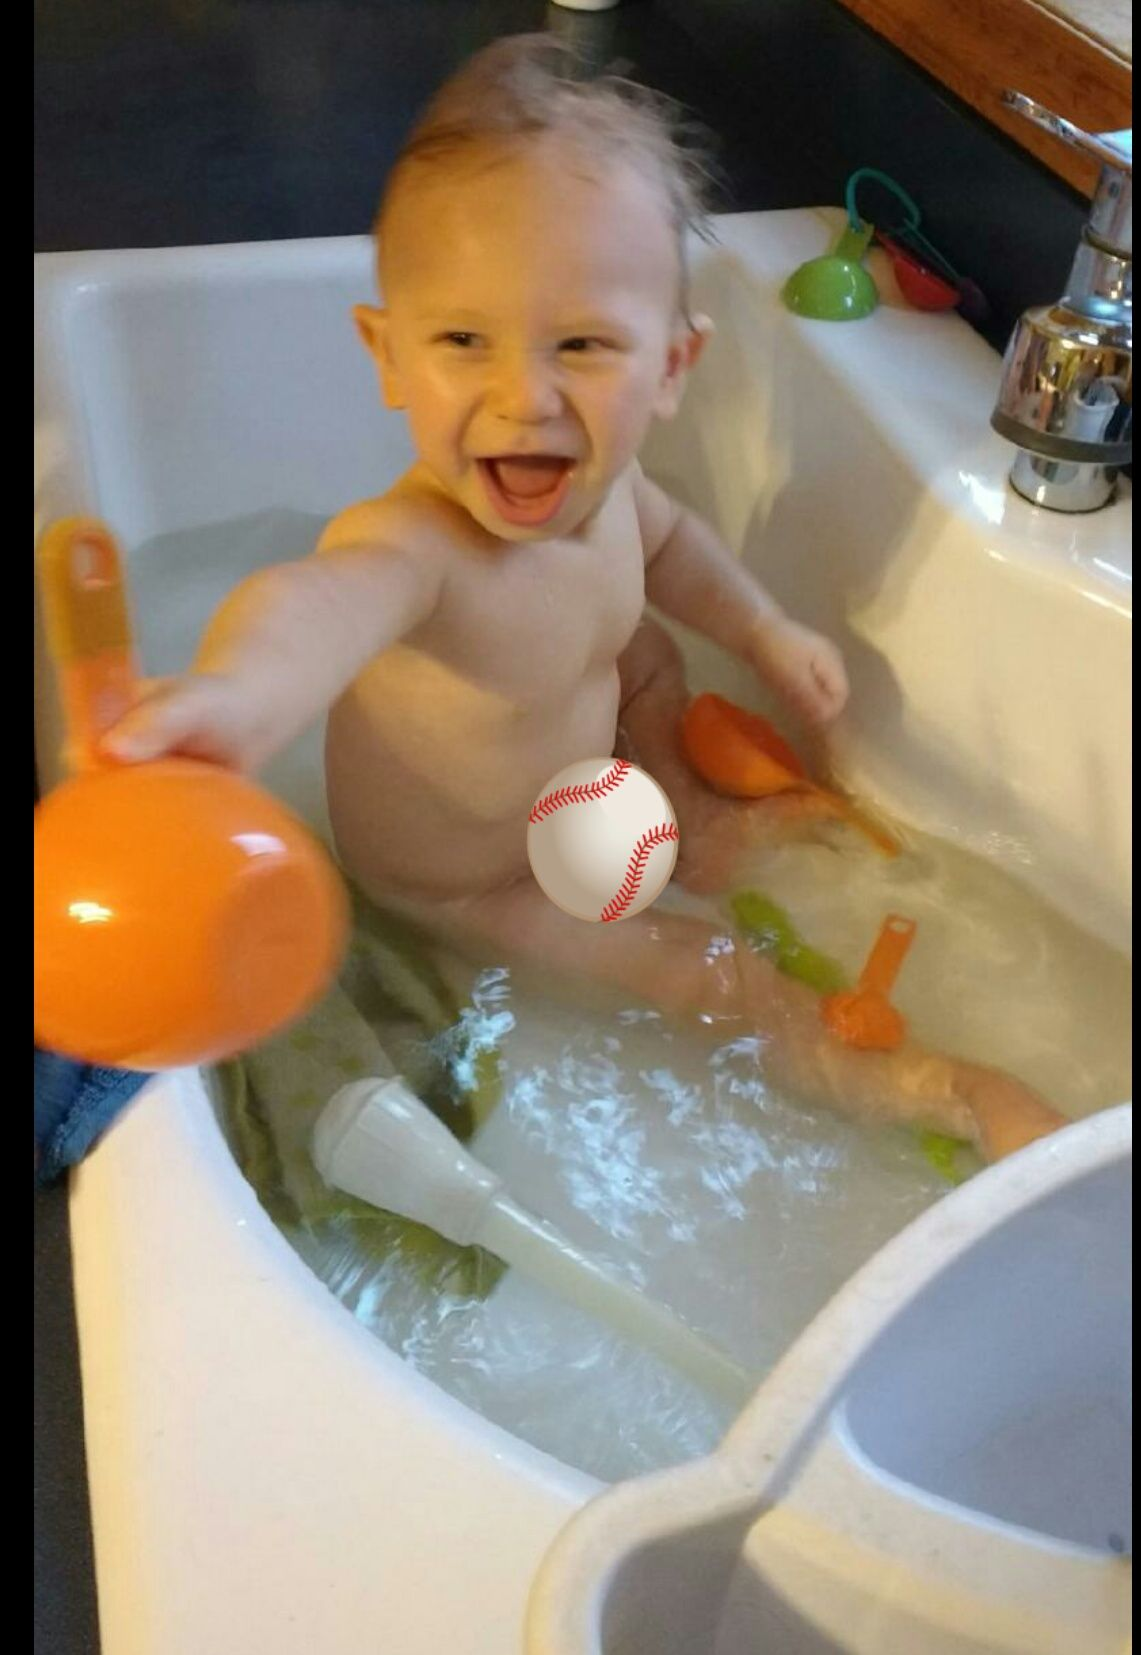 Loving bath time in grandmas kitchen sink | My First Grandchild ...